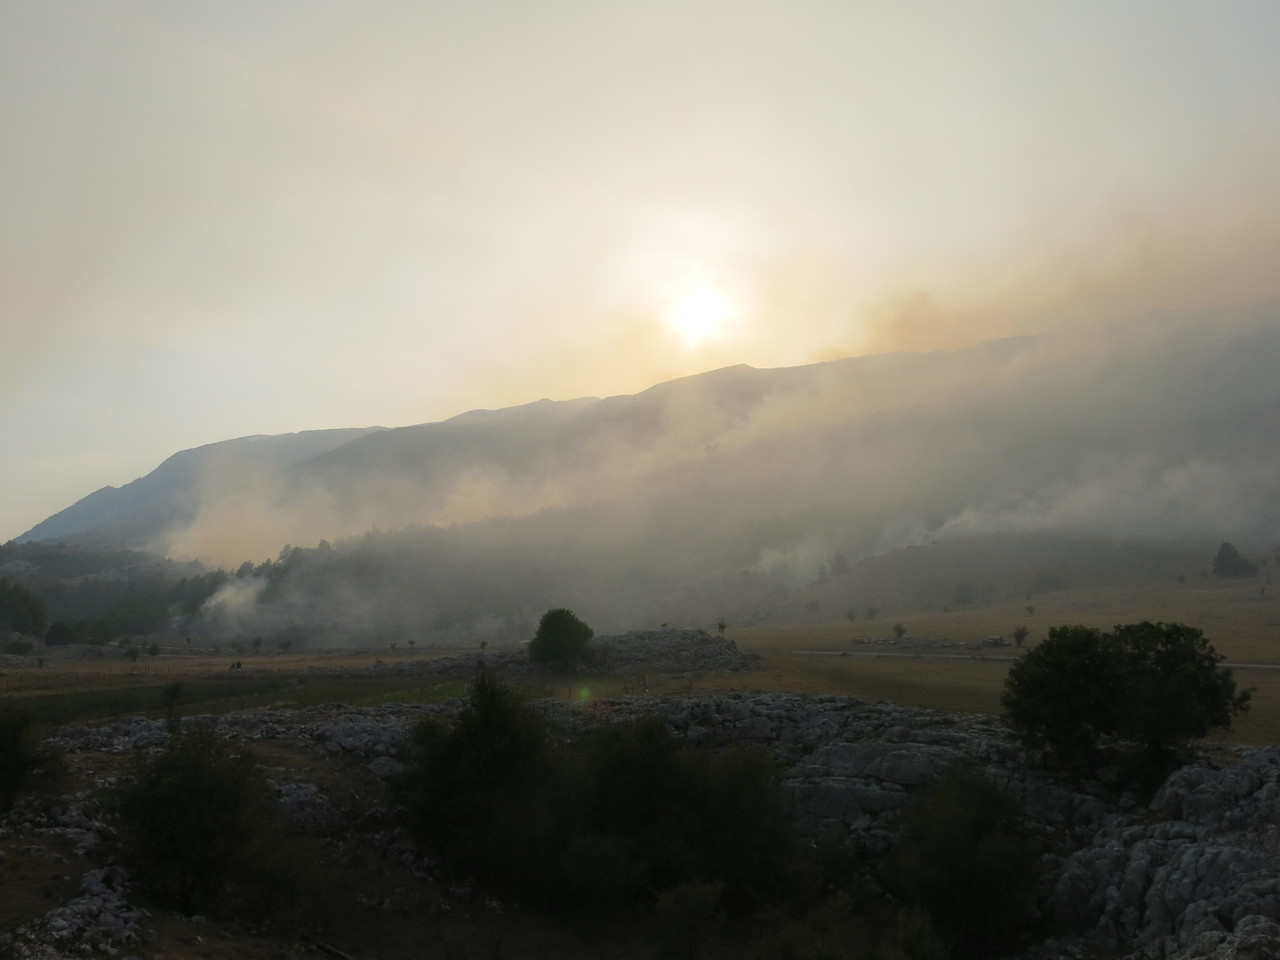 Active wild fires in the mountains